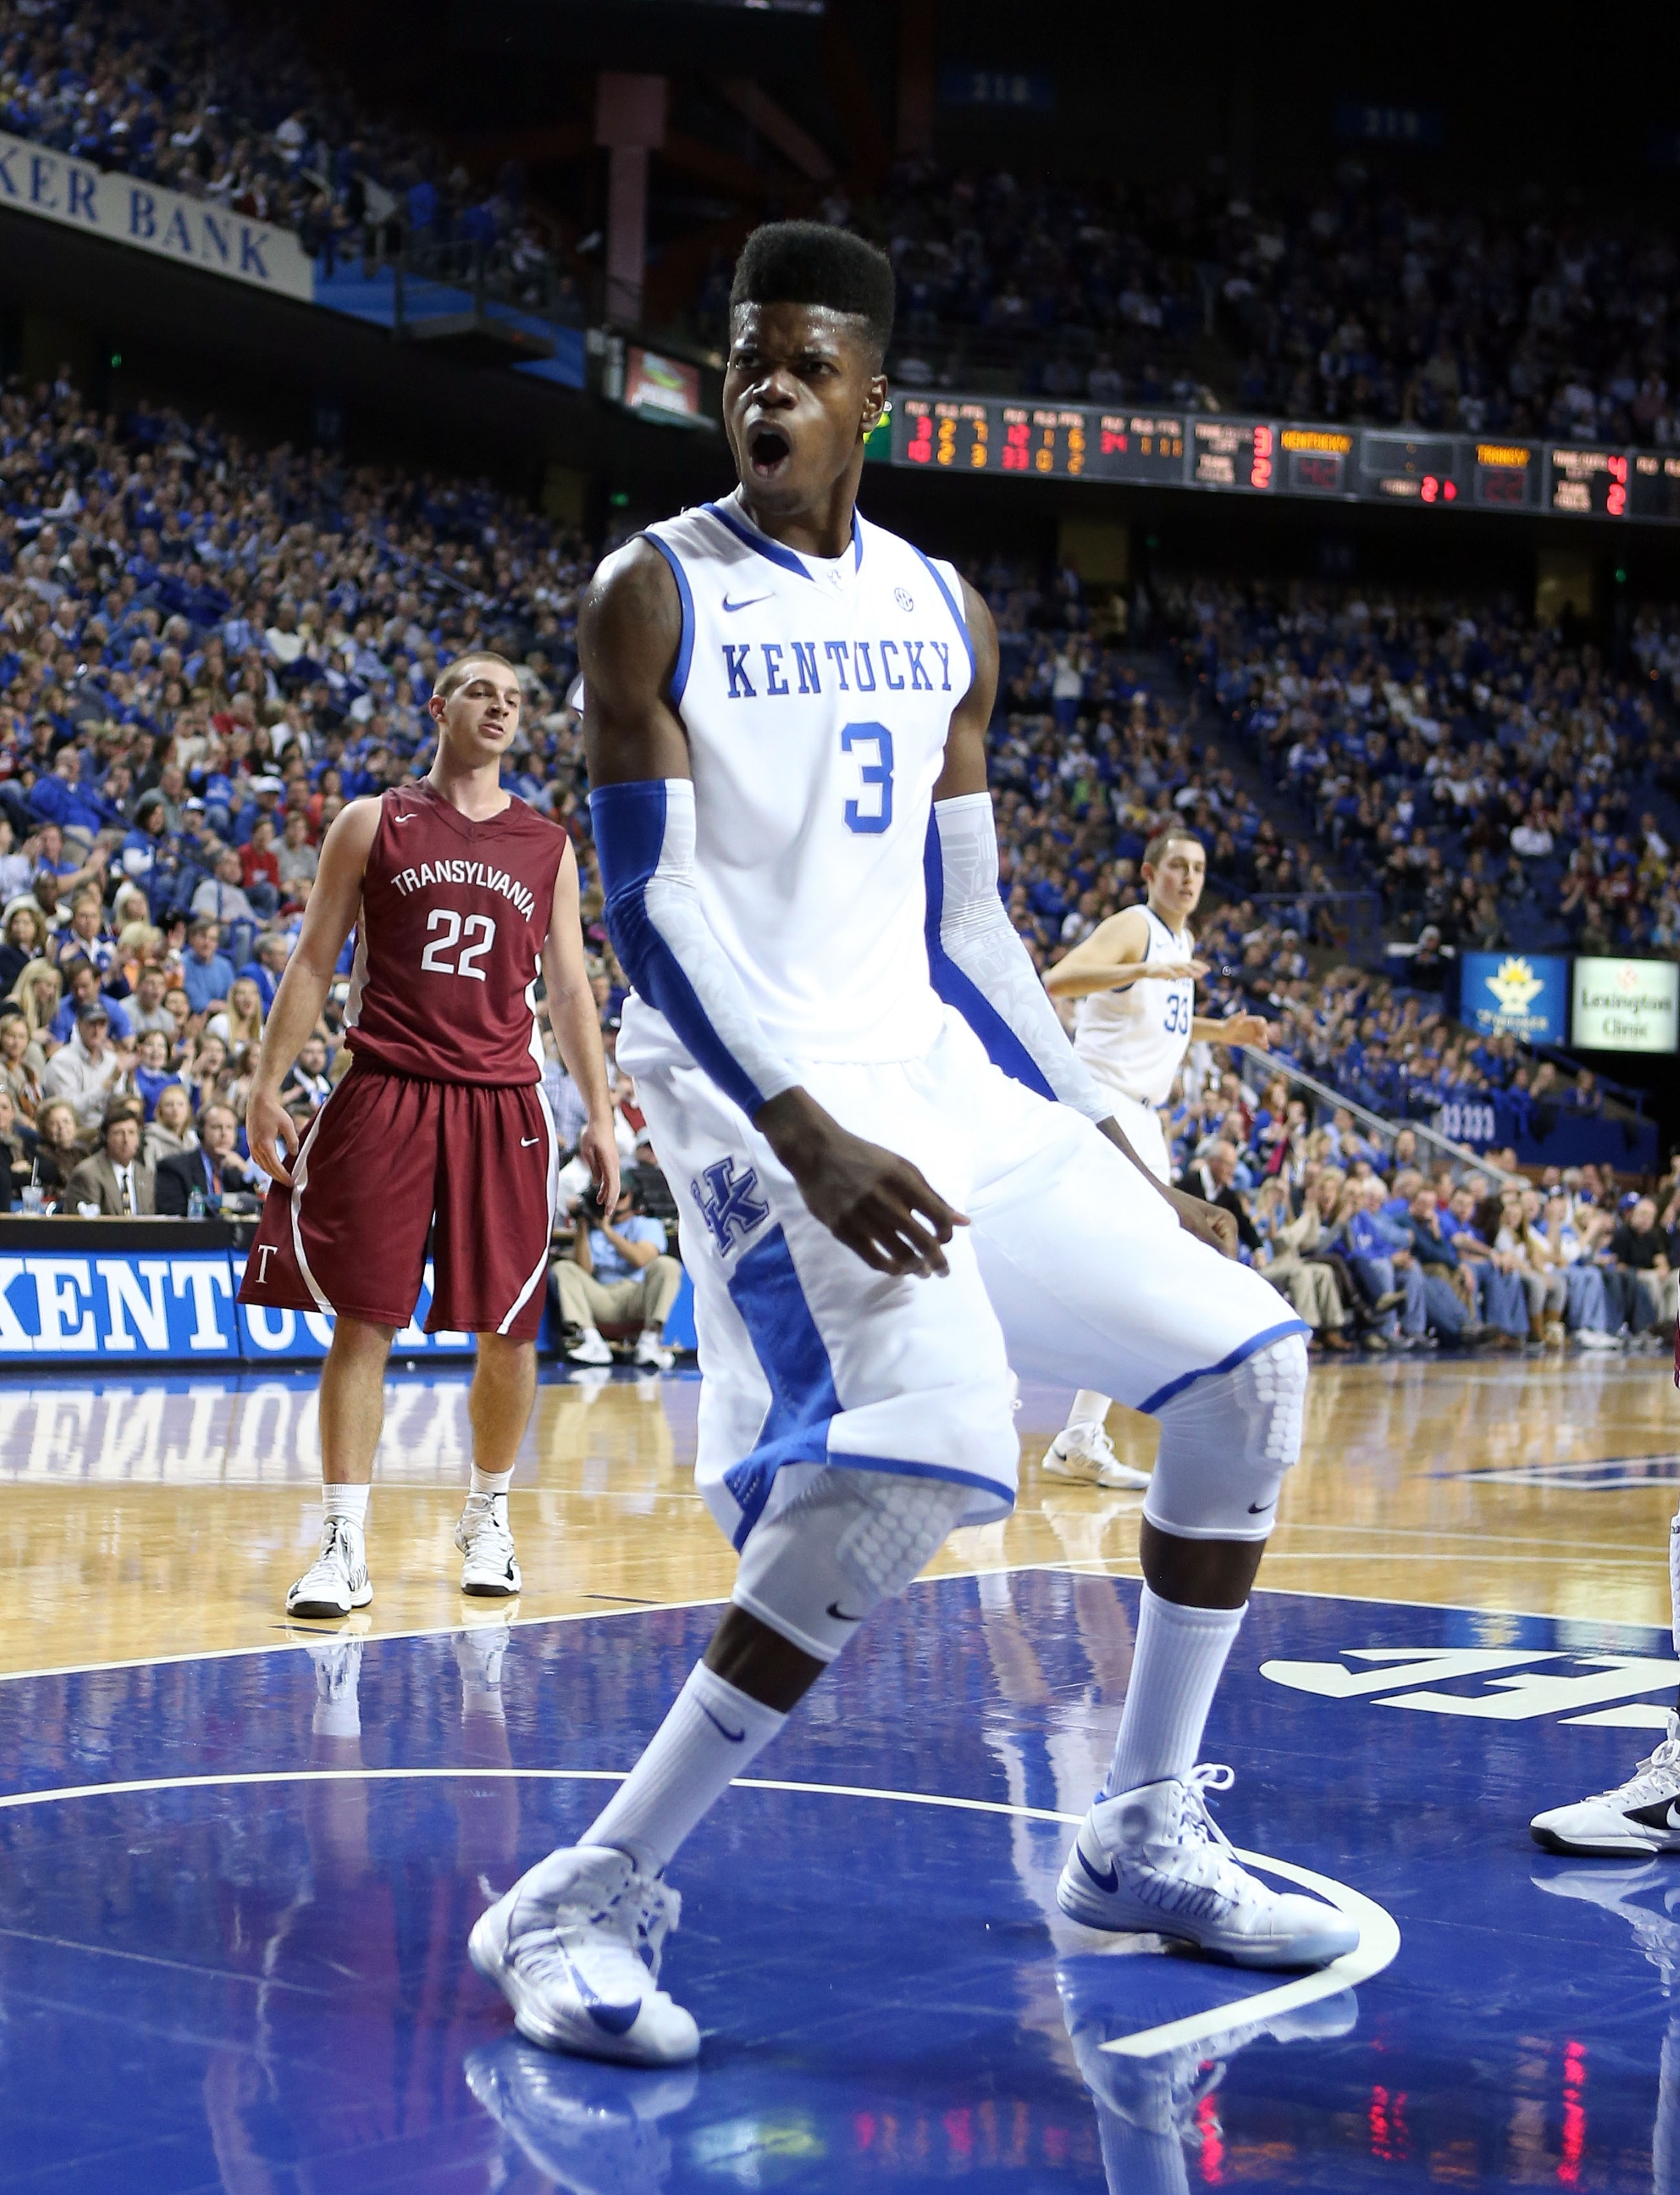 Nerlens Noel and the Wildcats could meet Duke in the Champions Classic. (Getty Images)